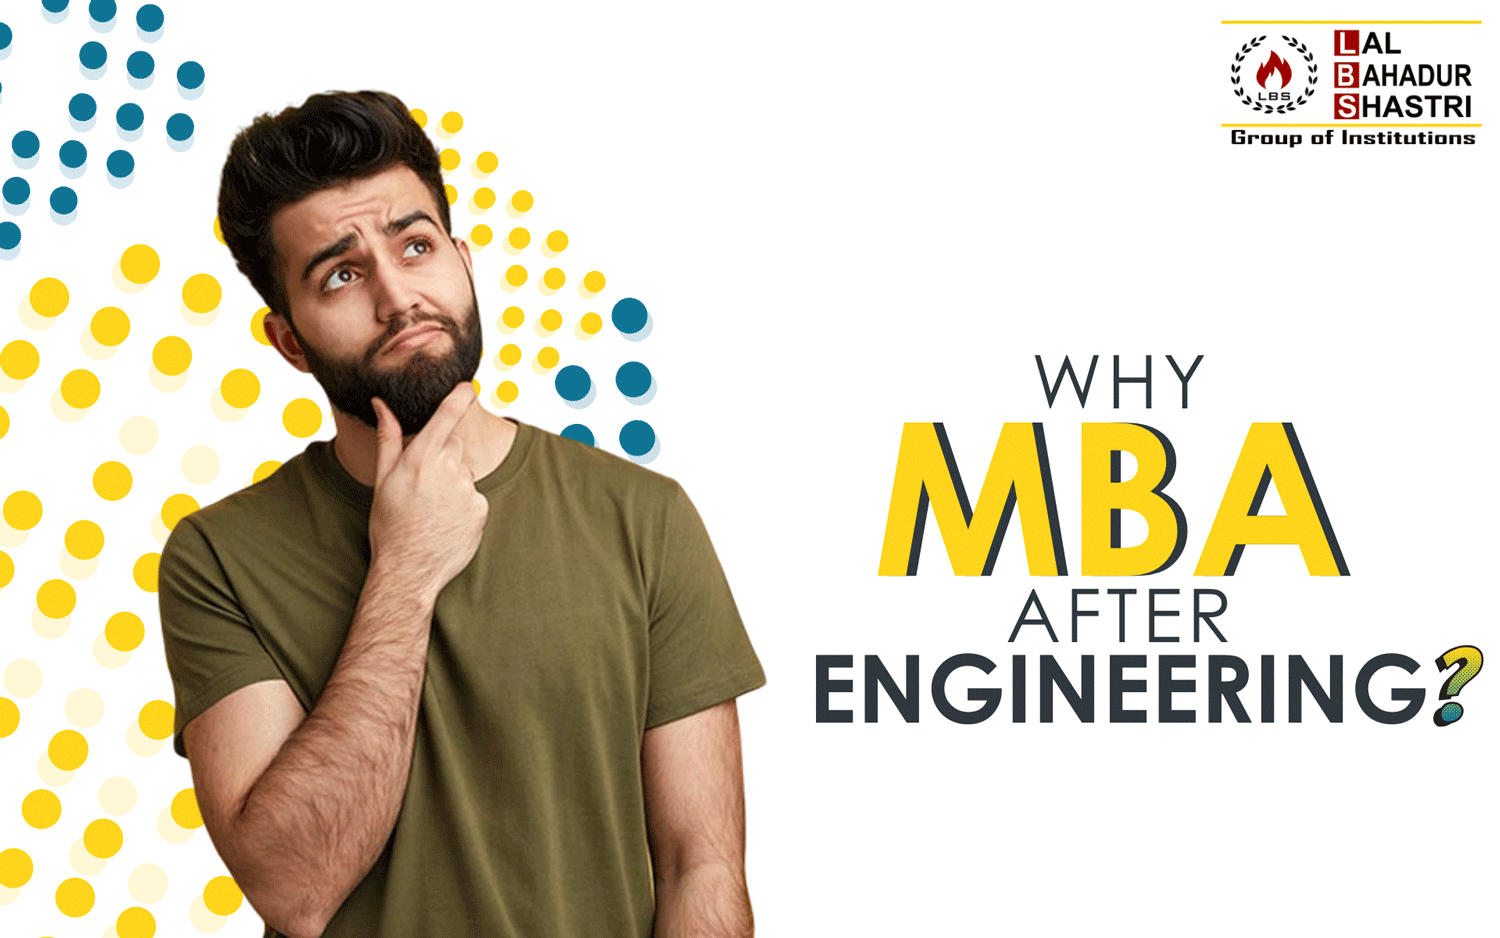 WHY MBA AFTER ENGINEERING?